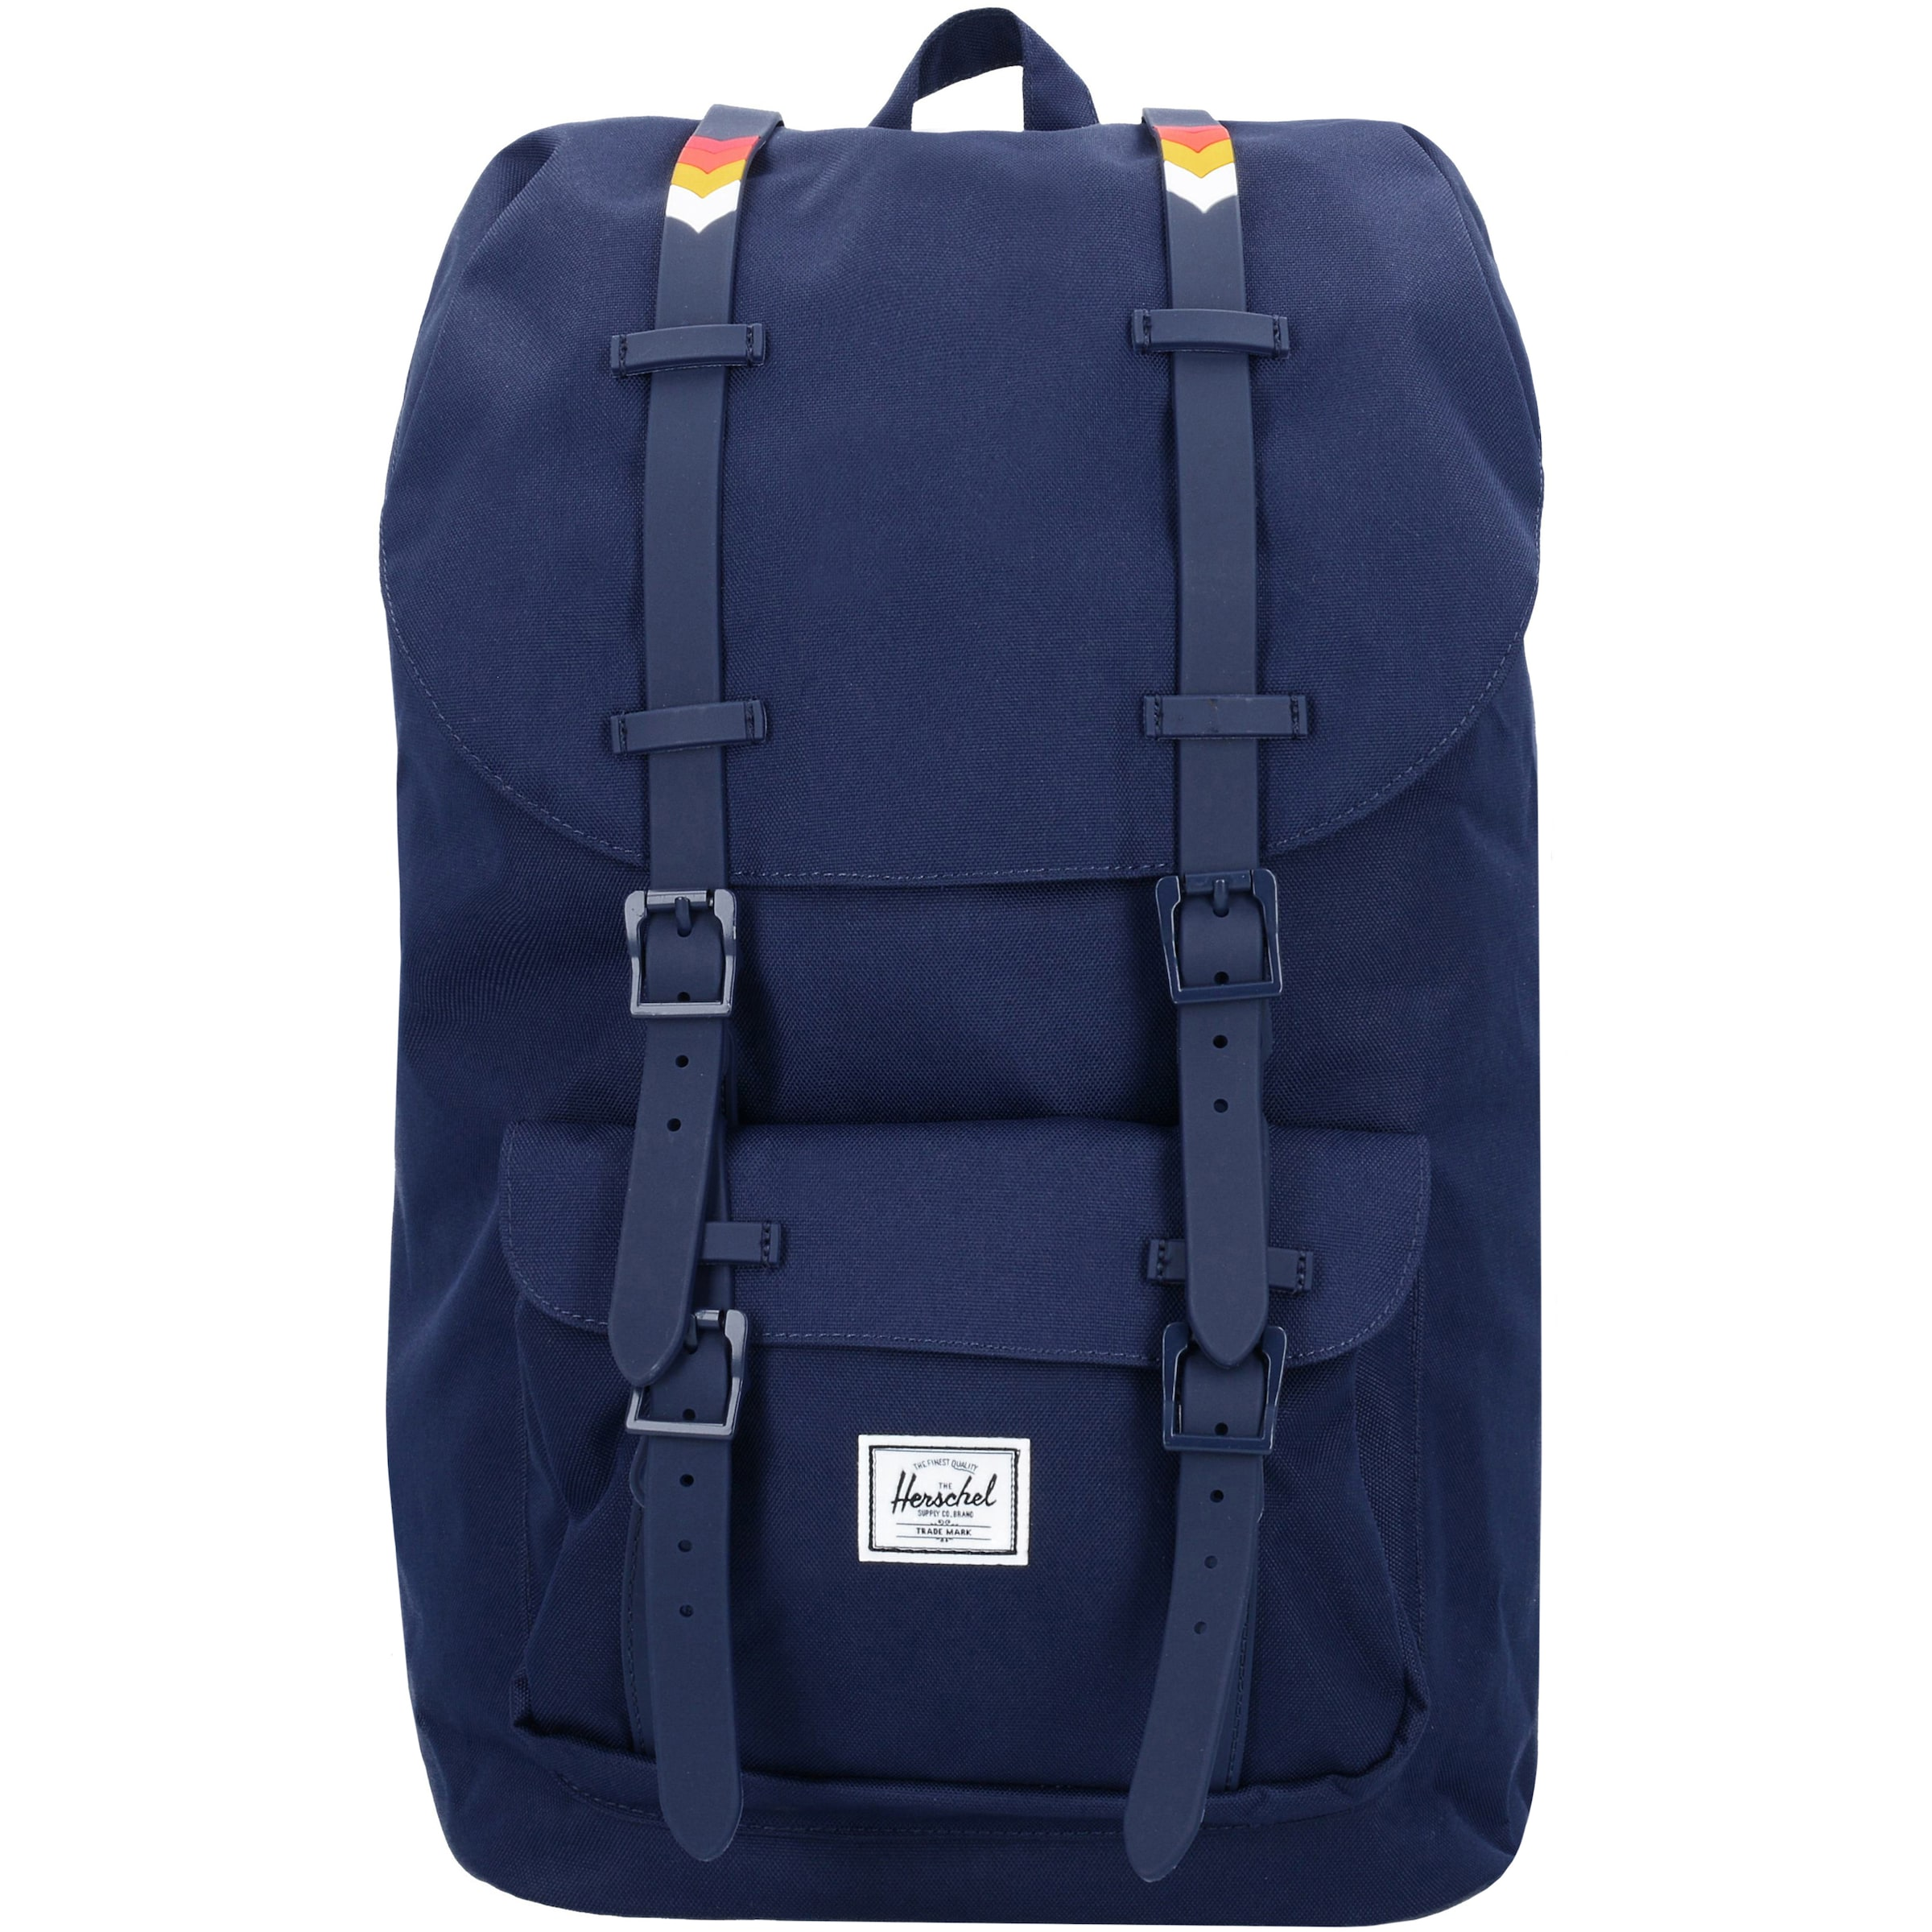 Laptopfach Herschel Little Rucksack 18 52 Little Backpack Herschel cm America OnZxzHUq